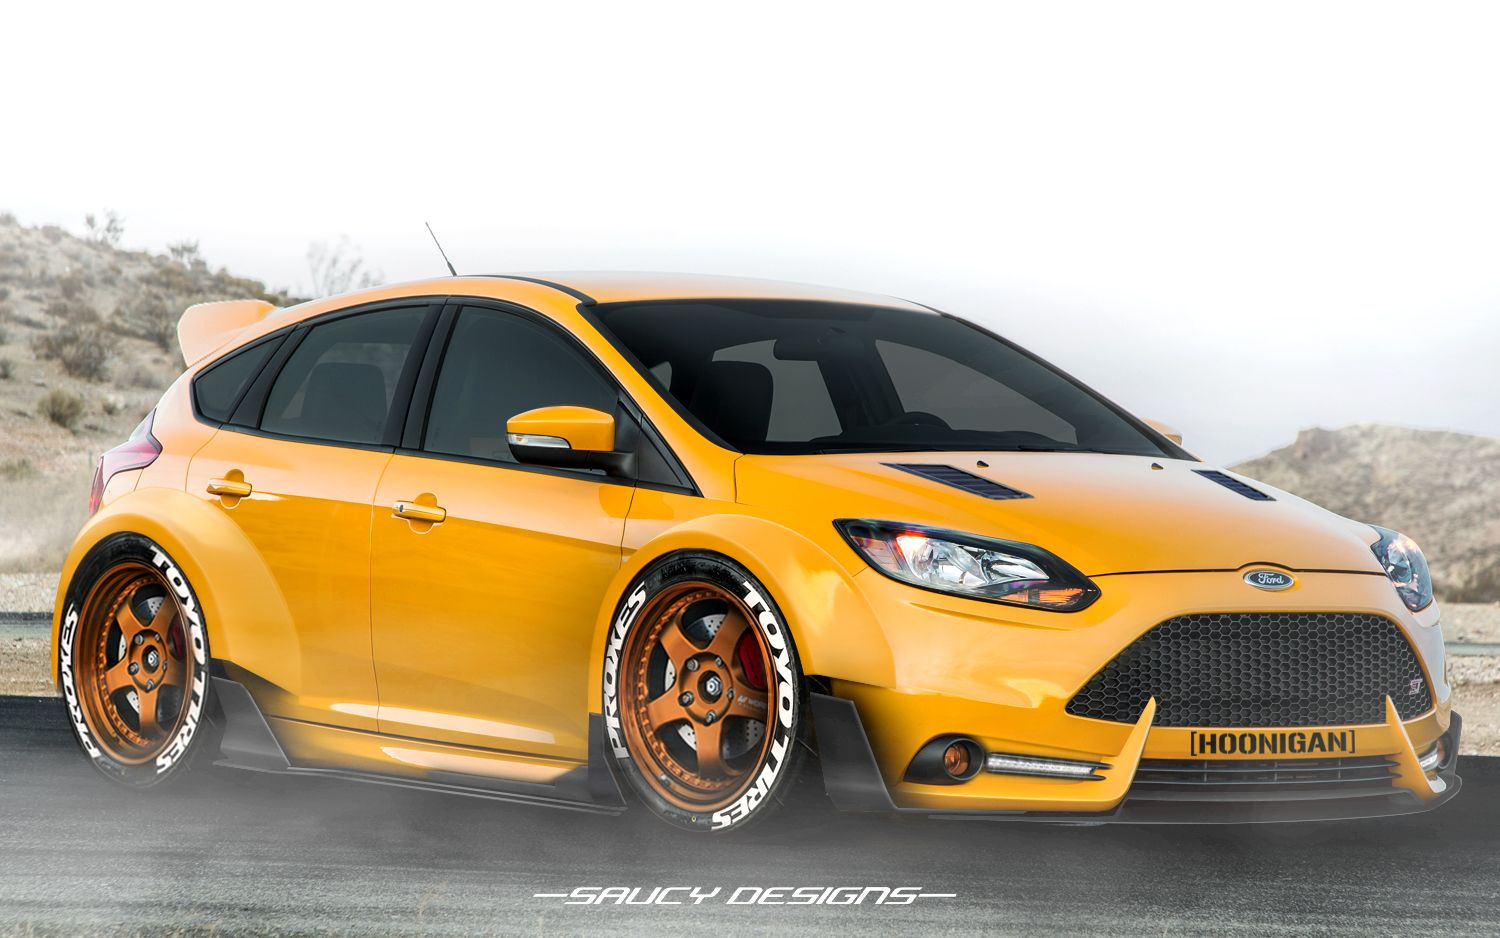 ford focus ST, widebody modded render Personal